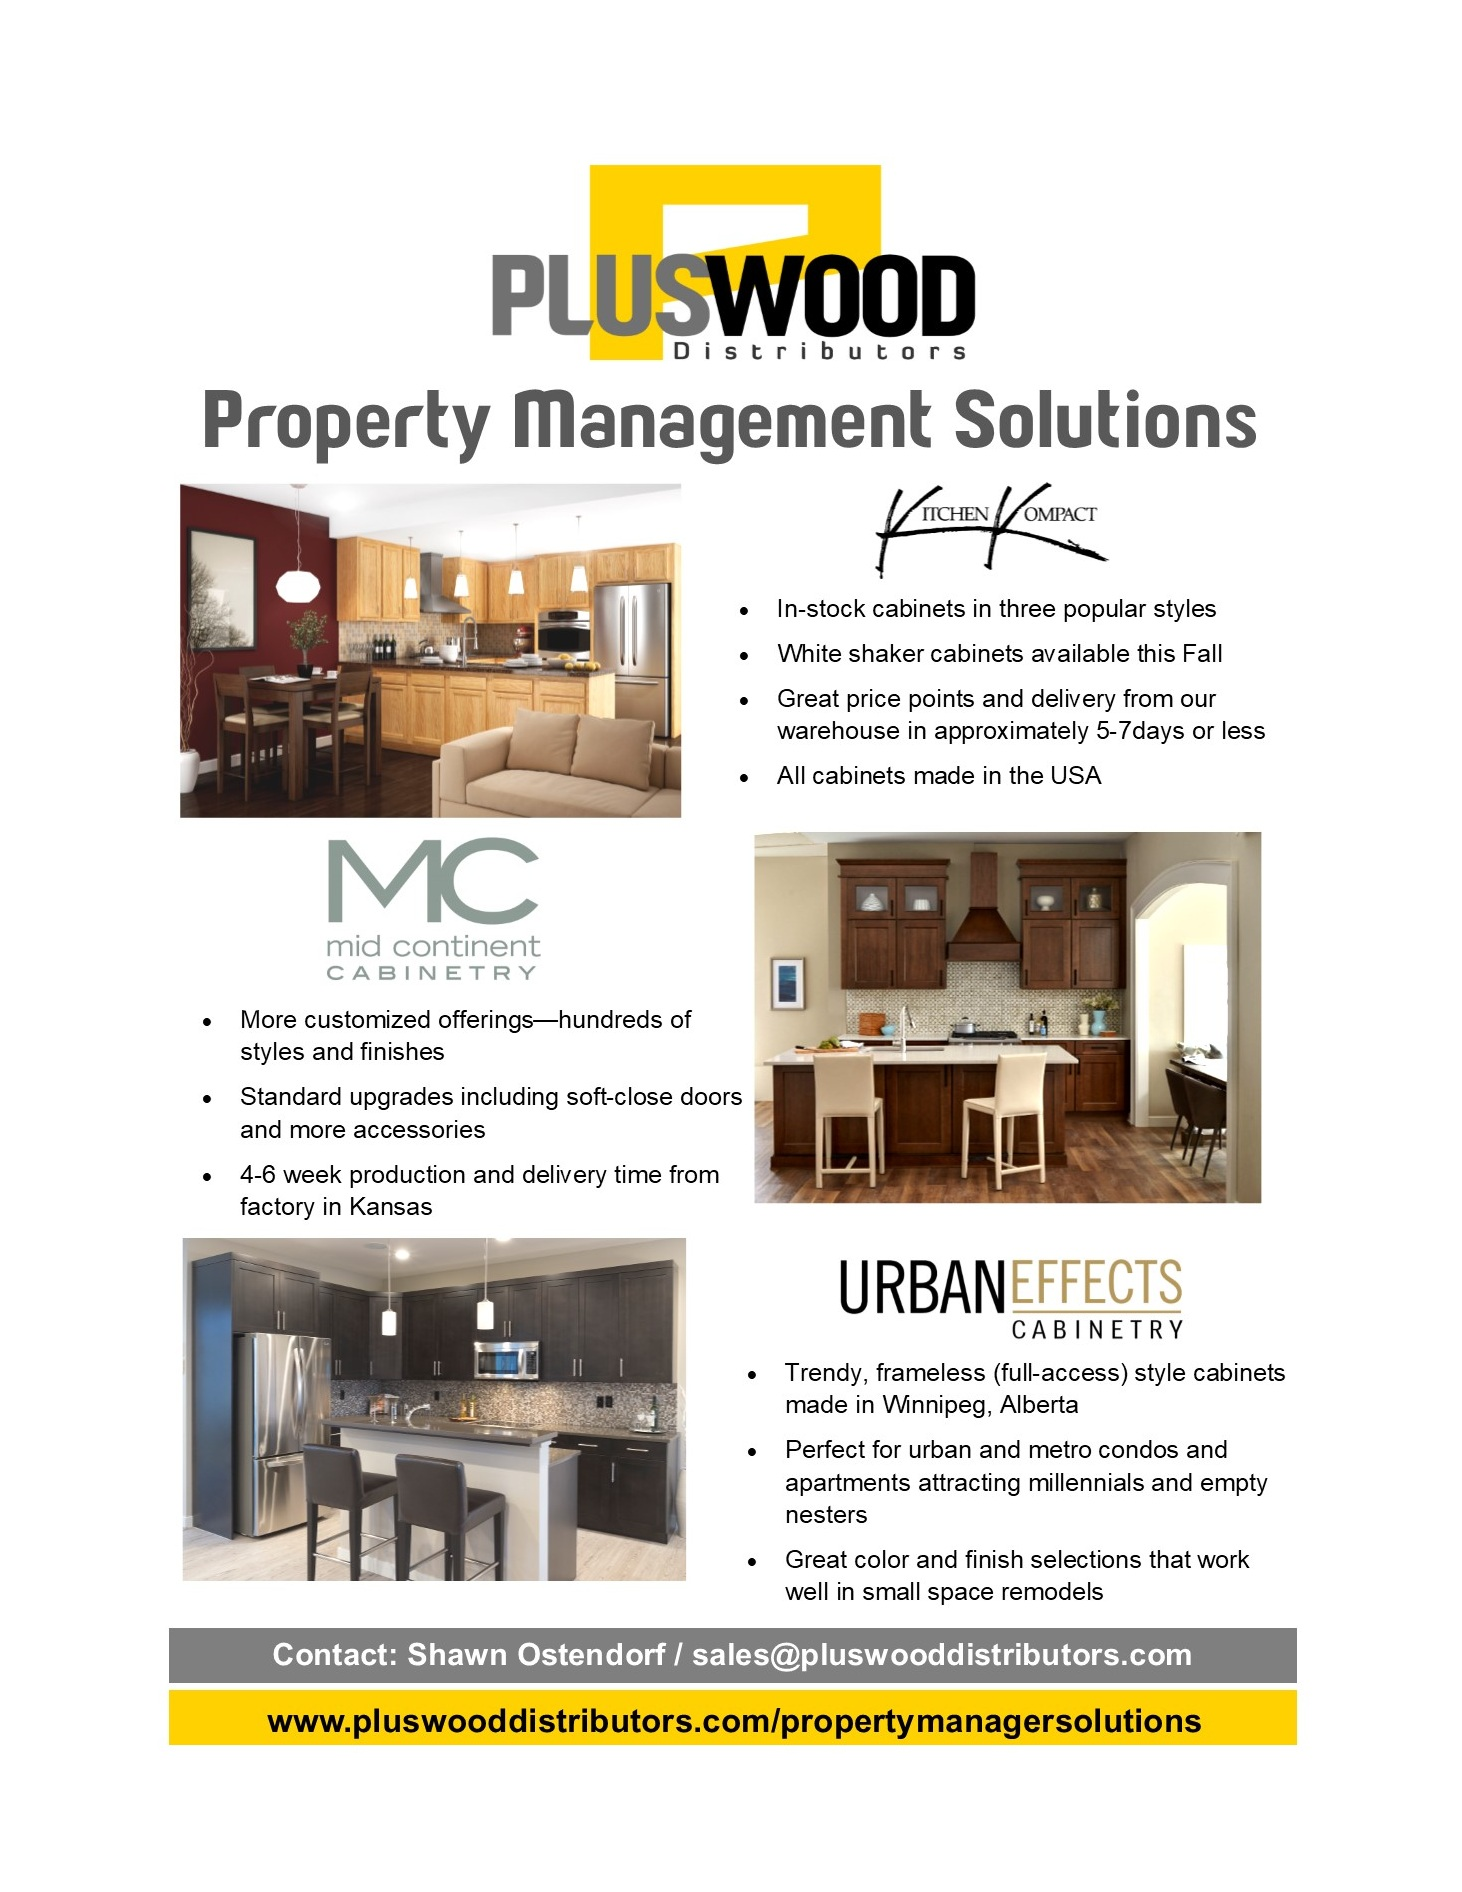 Property+Manager+Cabinet+Promo+Sheet.jpg